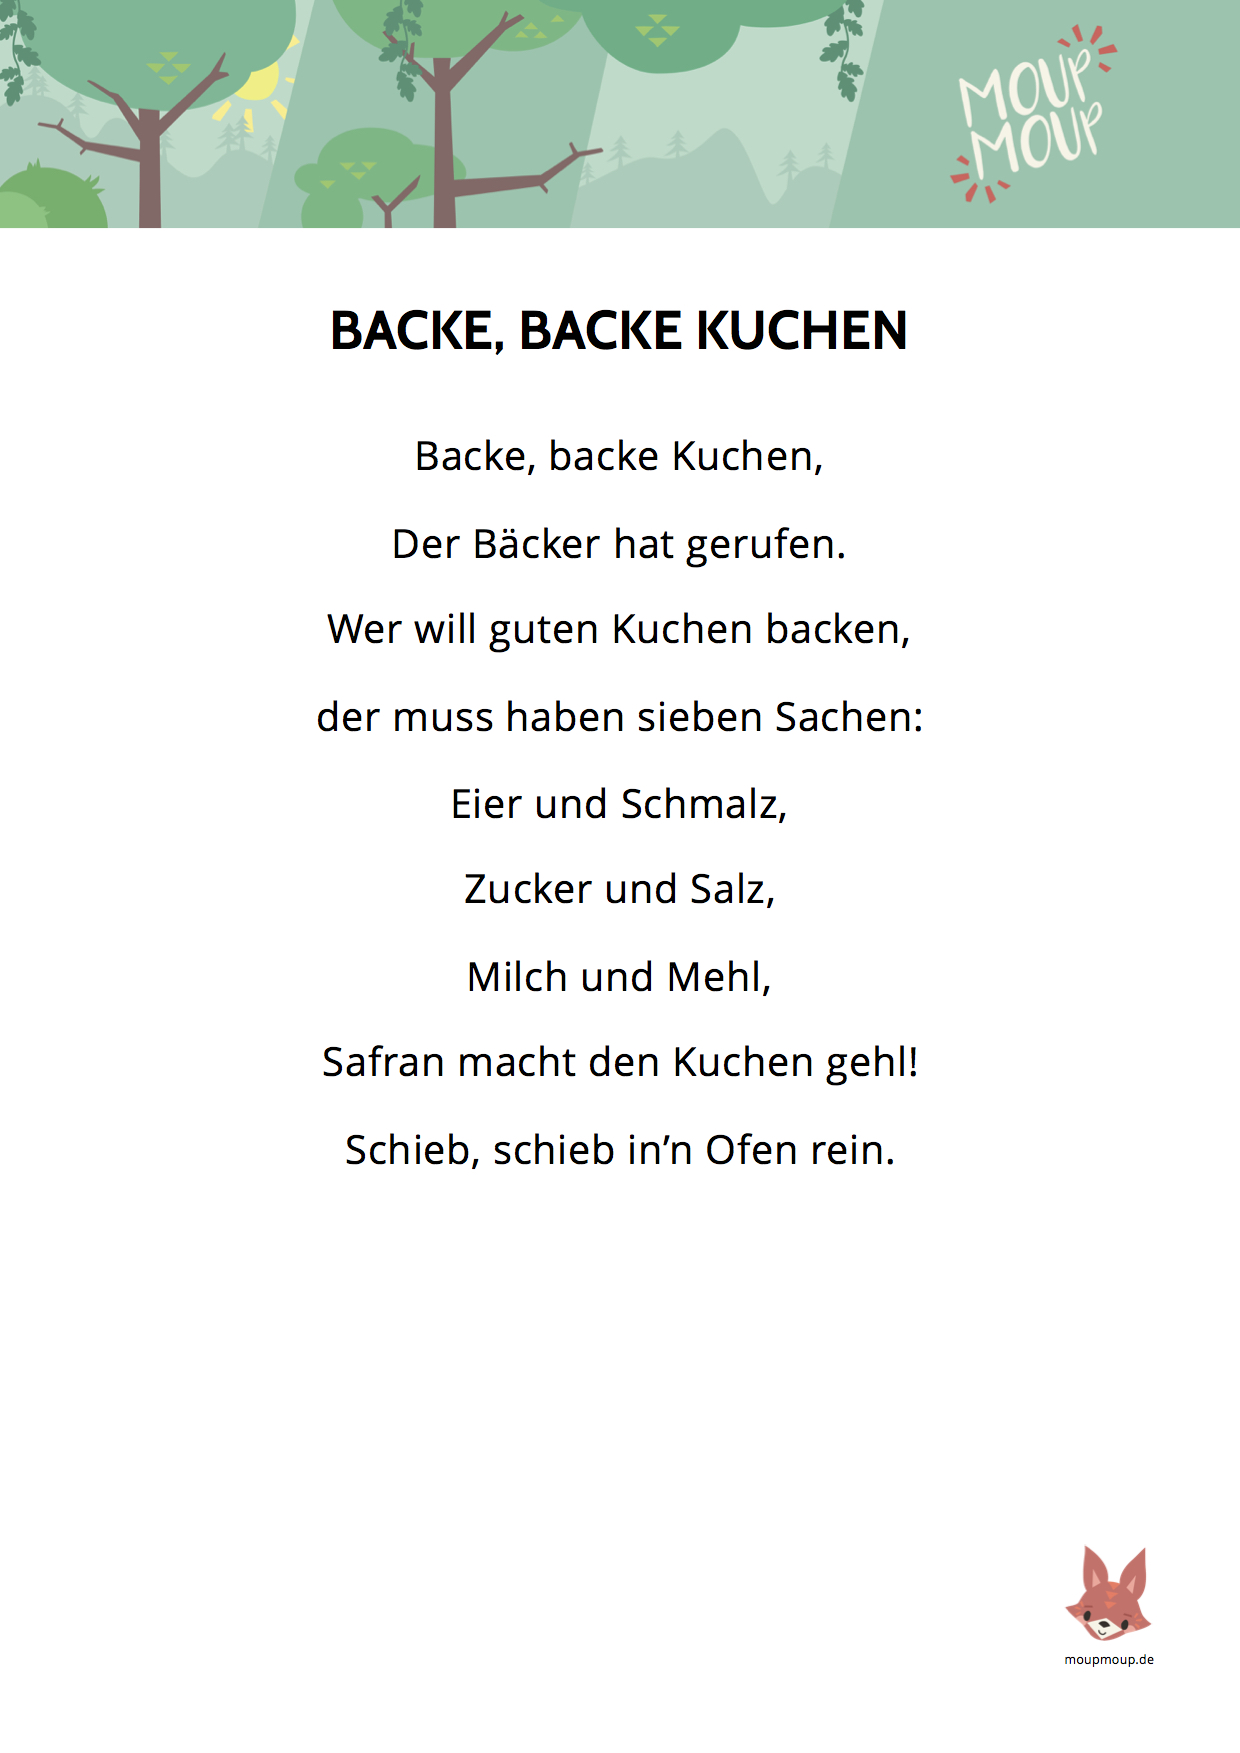 Backe Backe Kuchen Backe Backe Kuchen Lied And Liedtext Moupmoup Kinderlieder